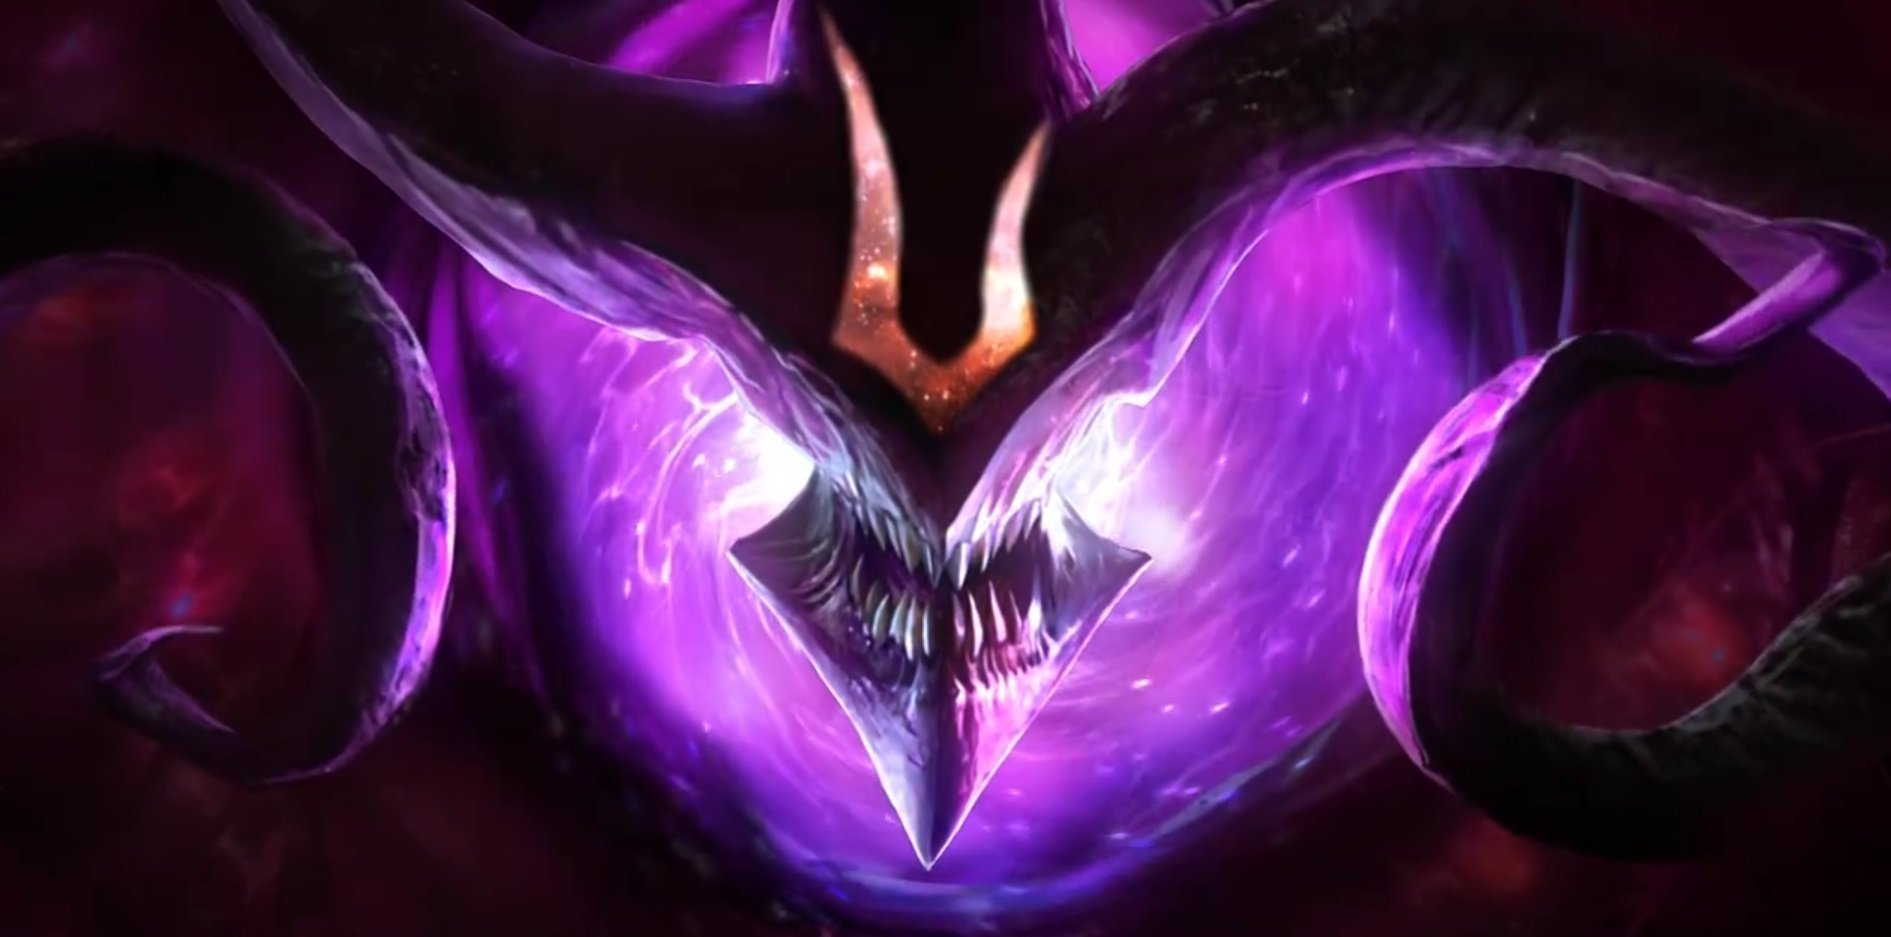 This new Thresh skin looks like it is void themed